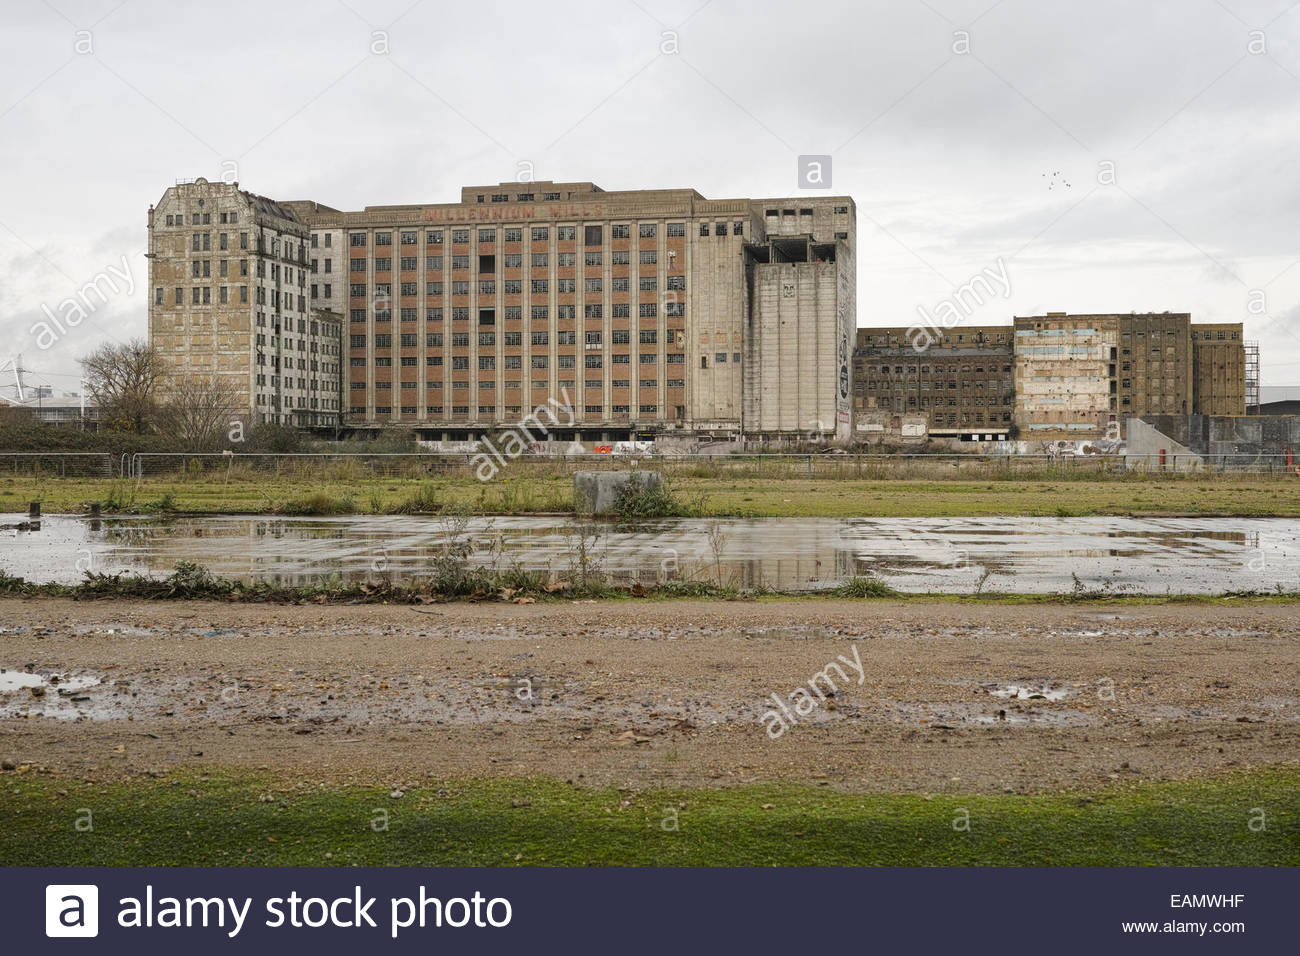 The derelict Millennium Mills building at West Silvertown: East London. - Stock Image